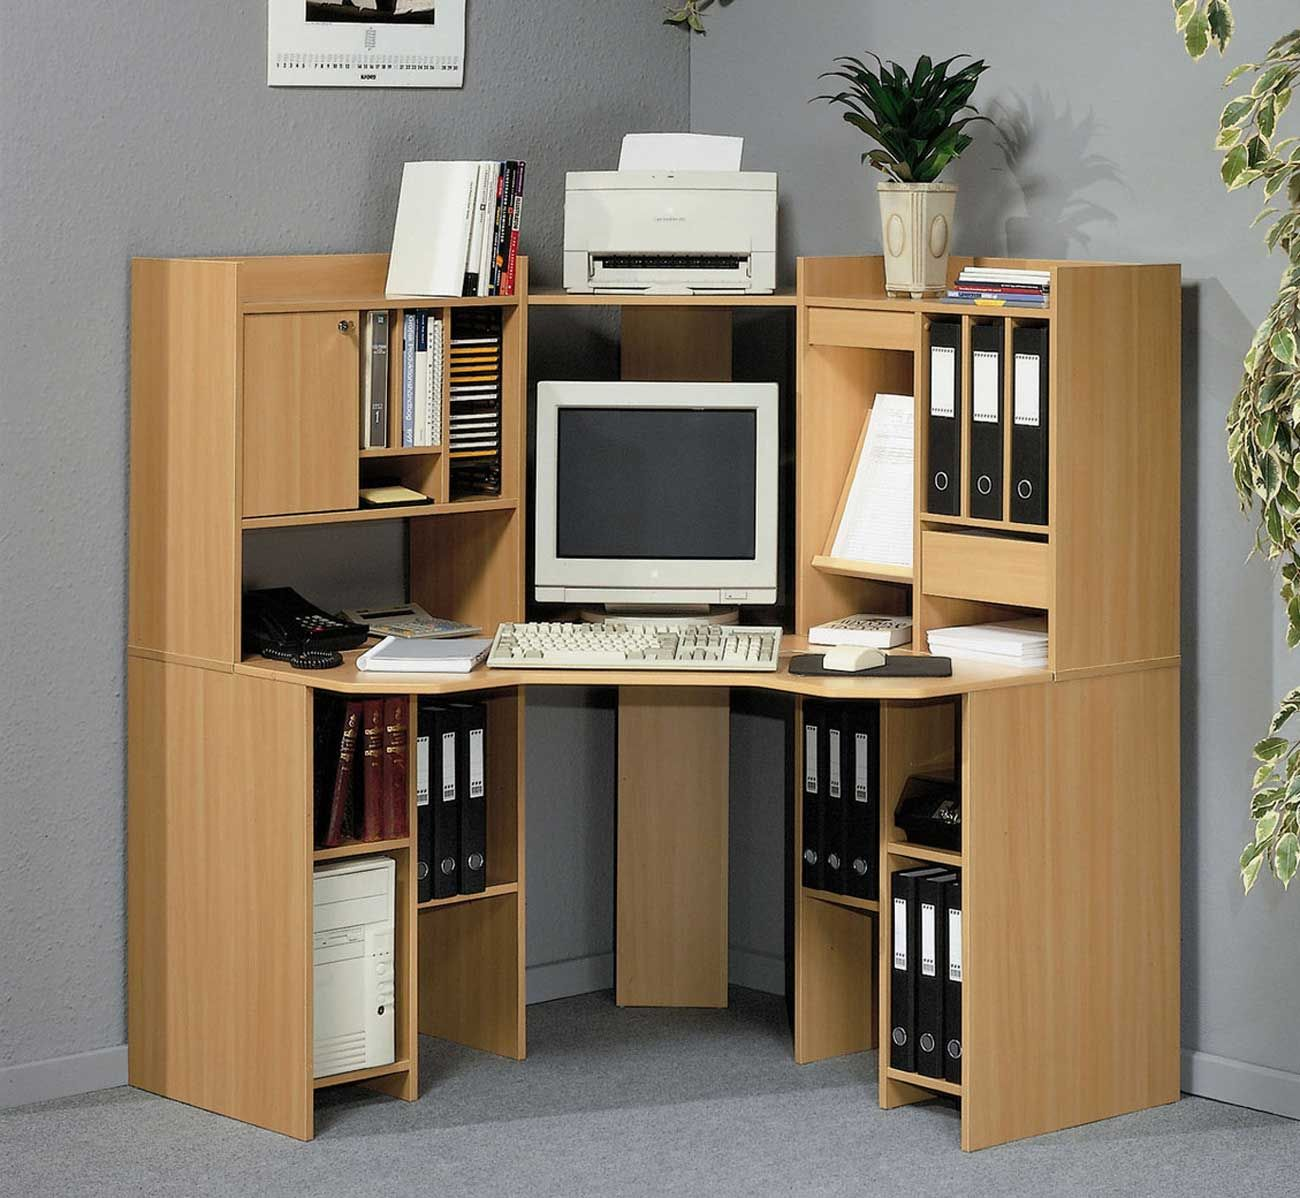 Wonderful Brown Wood Corner Space Functional Desk Design